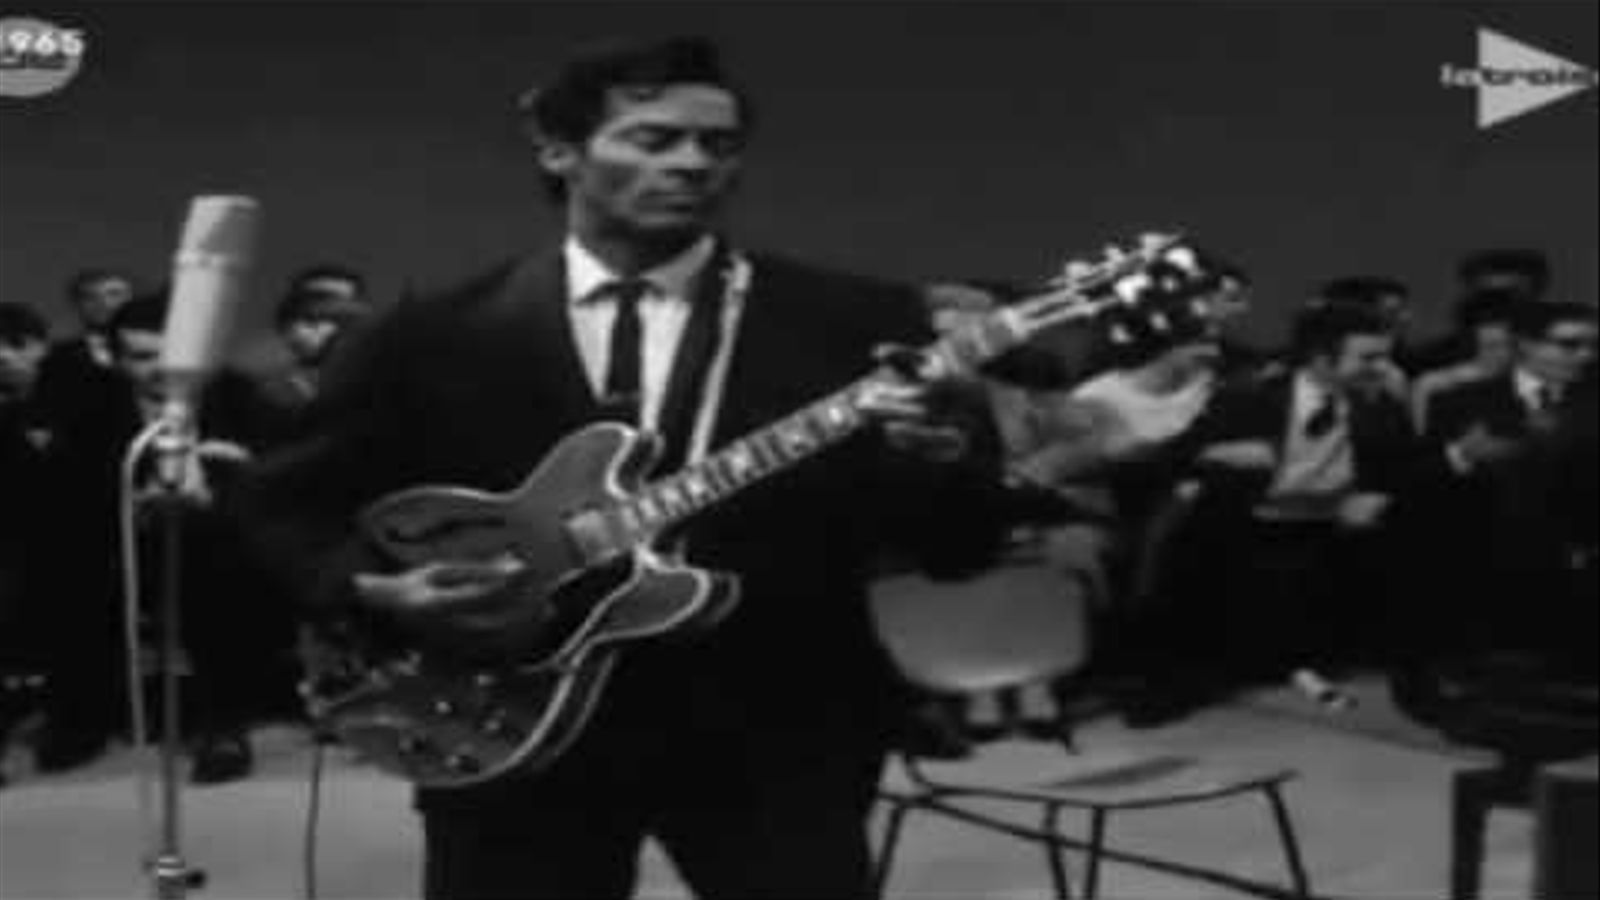 'No particular place to go', de Chuck Berry